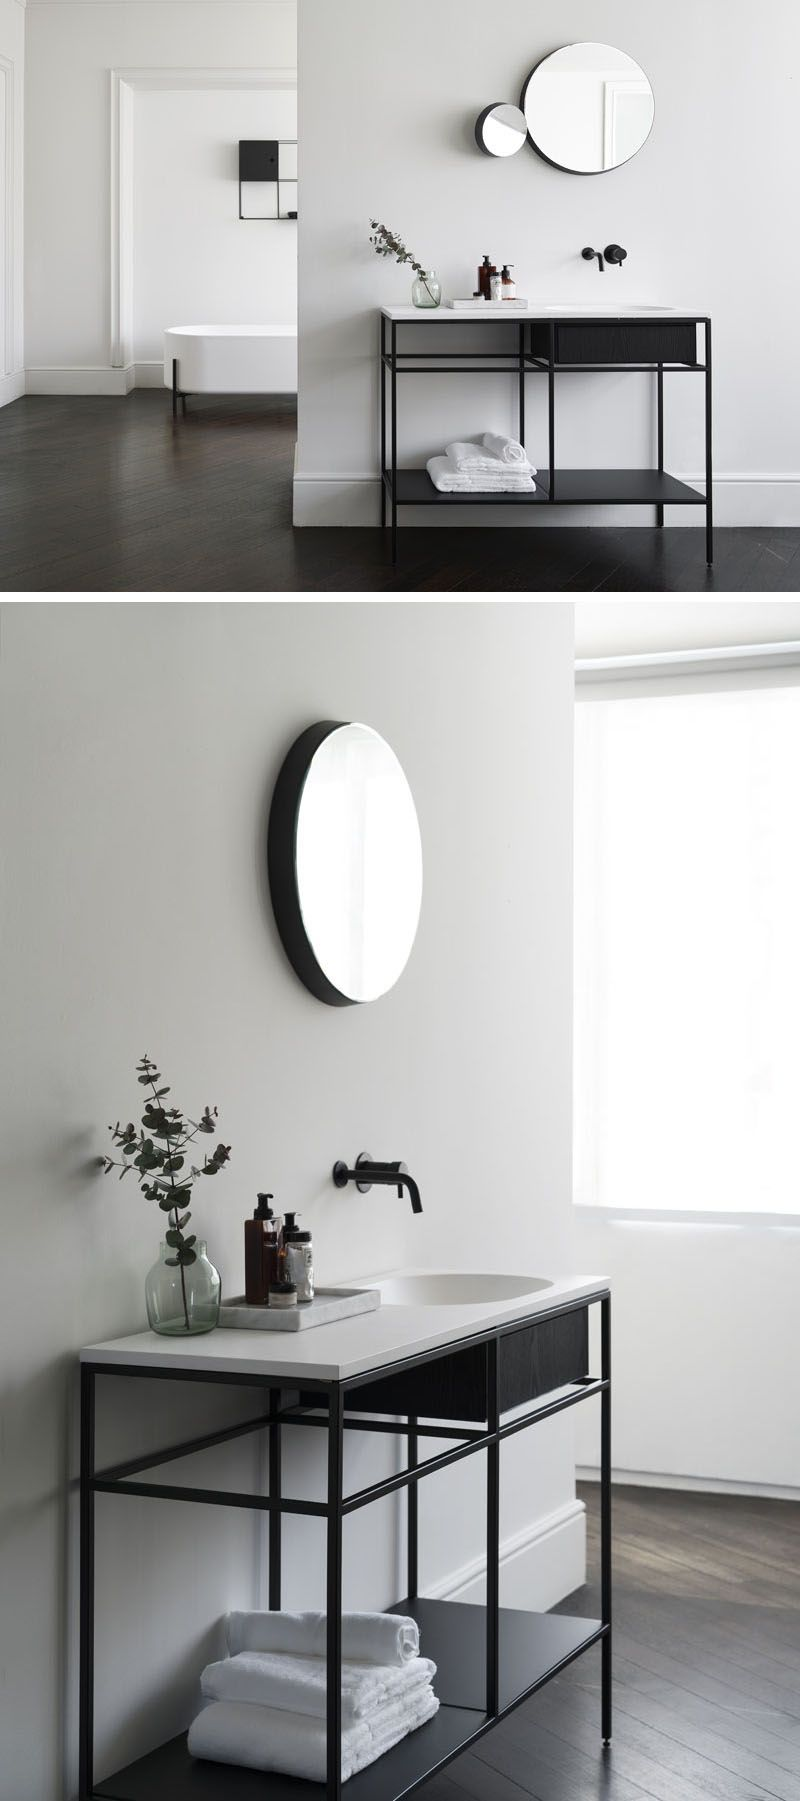 Badezimmer Norm Norm Architects Have Designed A Collection Of Minimalist